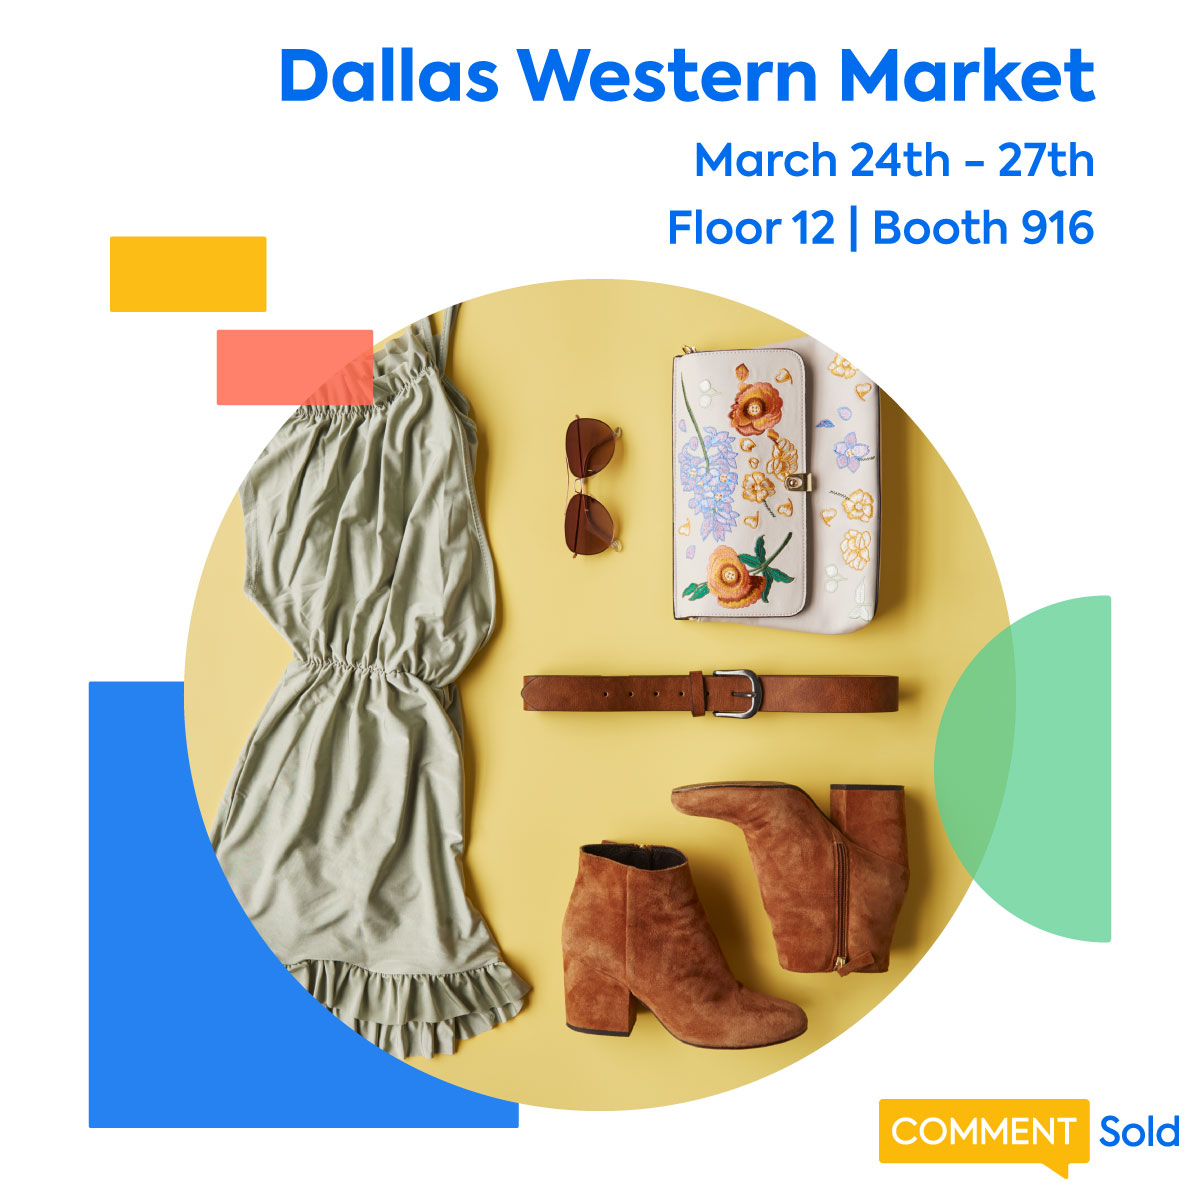 Join us at Dallas Western Market!